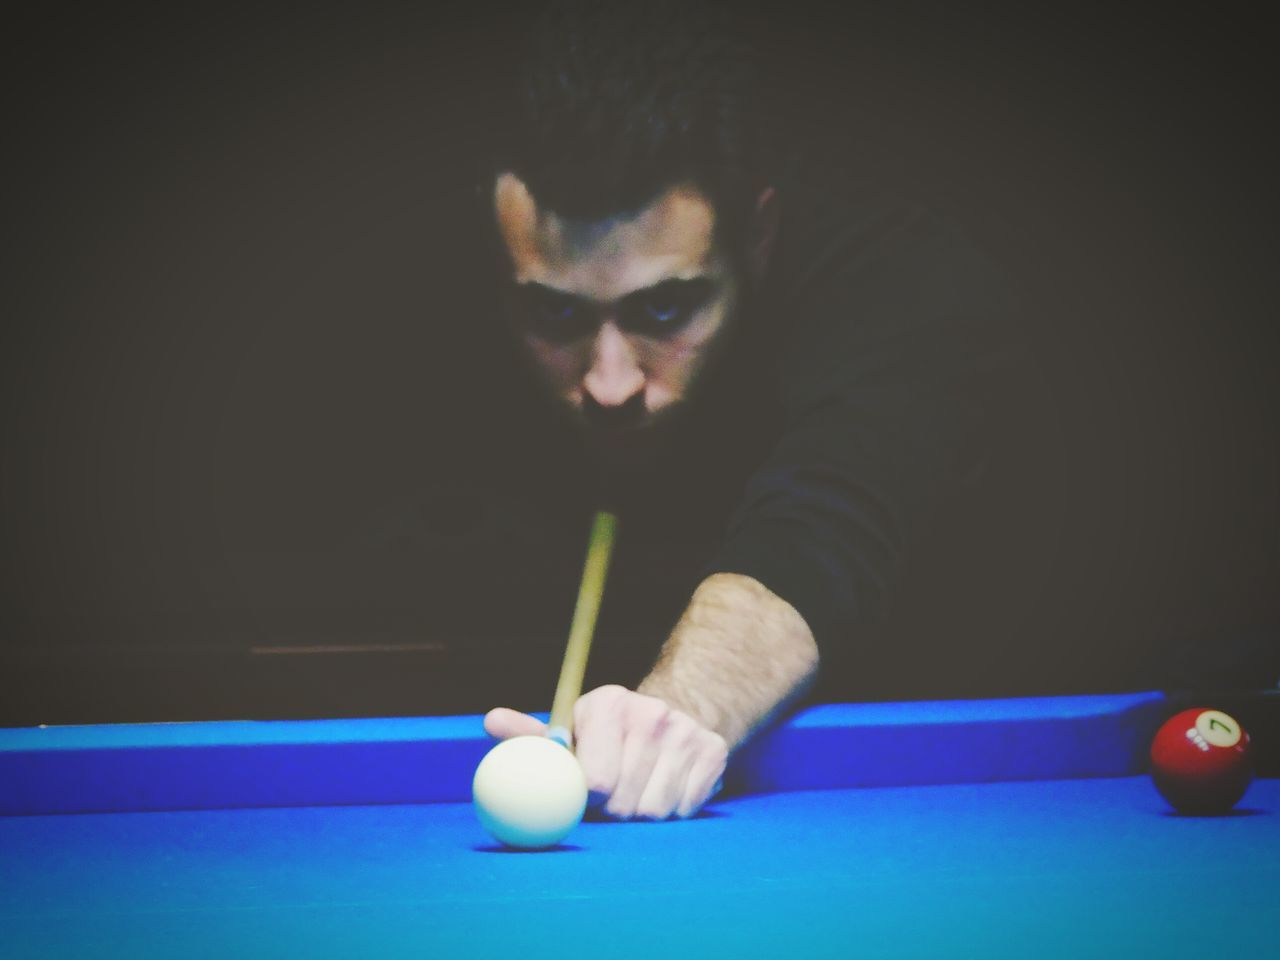 pool ball, pool - cue sport, pool table, pool cue, sport, playing, snooker, concentration, leisure activity, snooker ball, one person, table, real people, recreational pursuit, ball, young adult, competition, leisure games, indoors, lifestyles, young men, cue ball, pool hall, taking a shot - sport, competitive sport, men, human hand, snooker and pool, day, adult, people